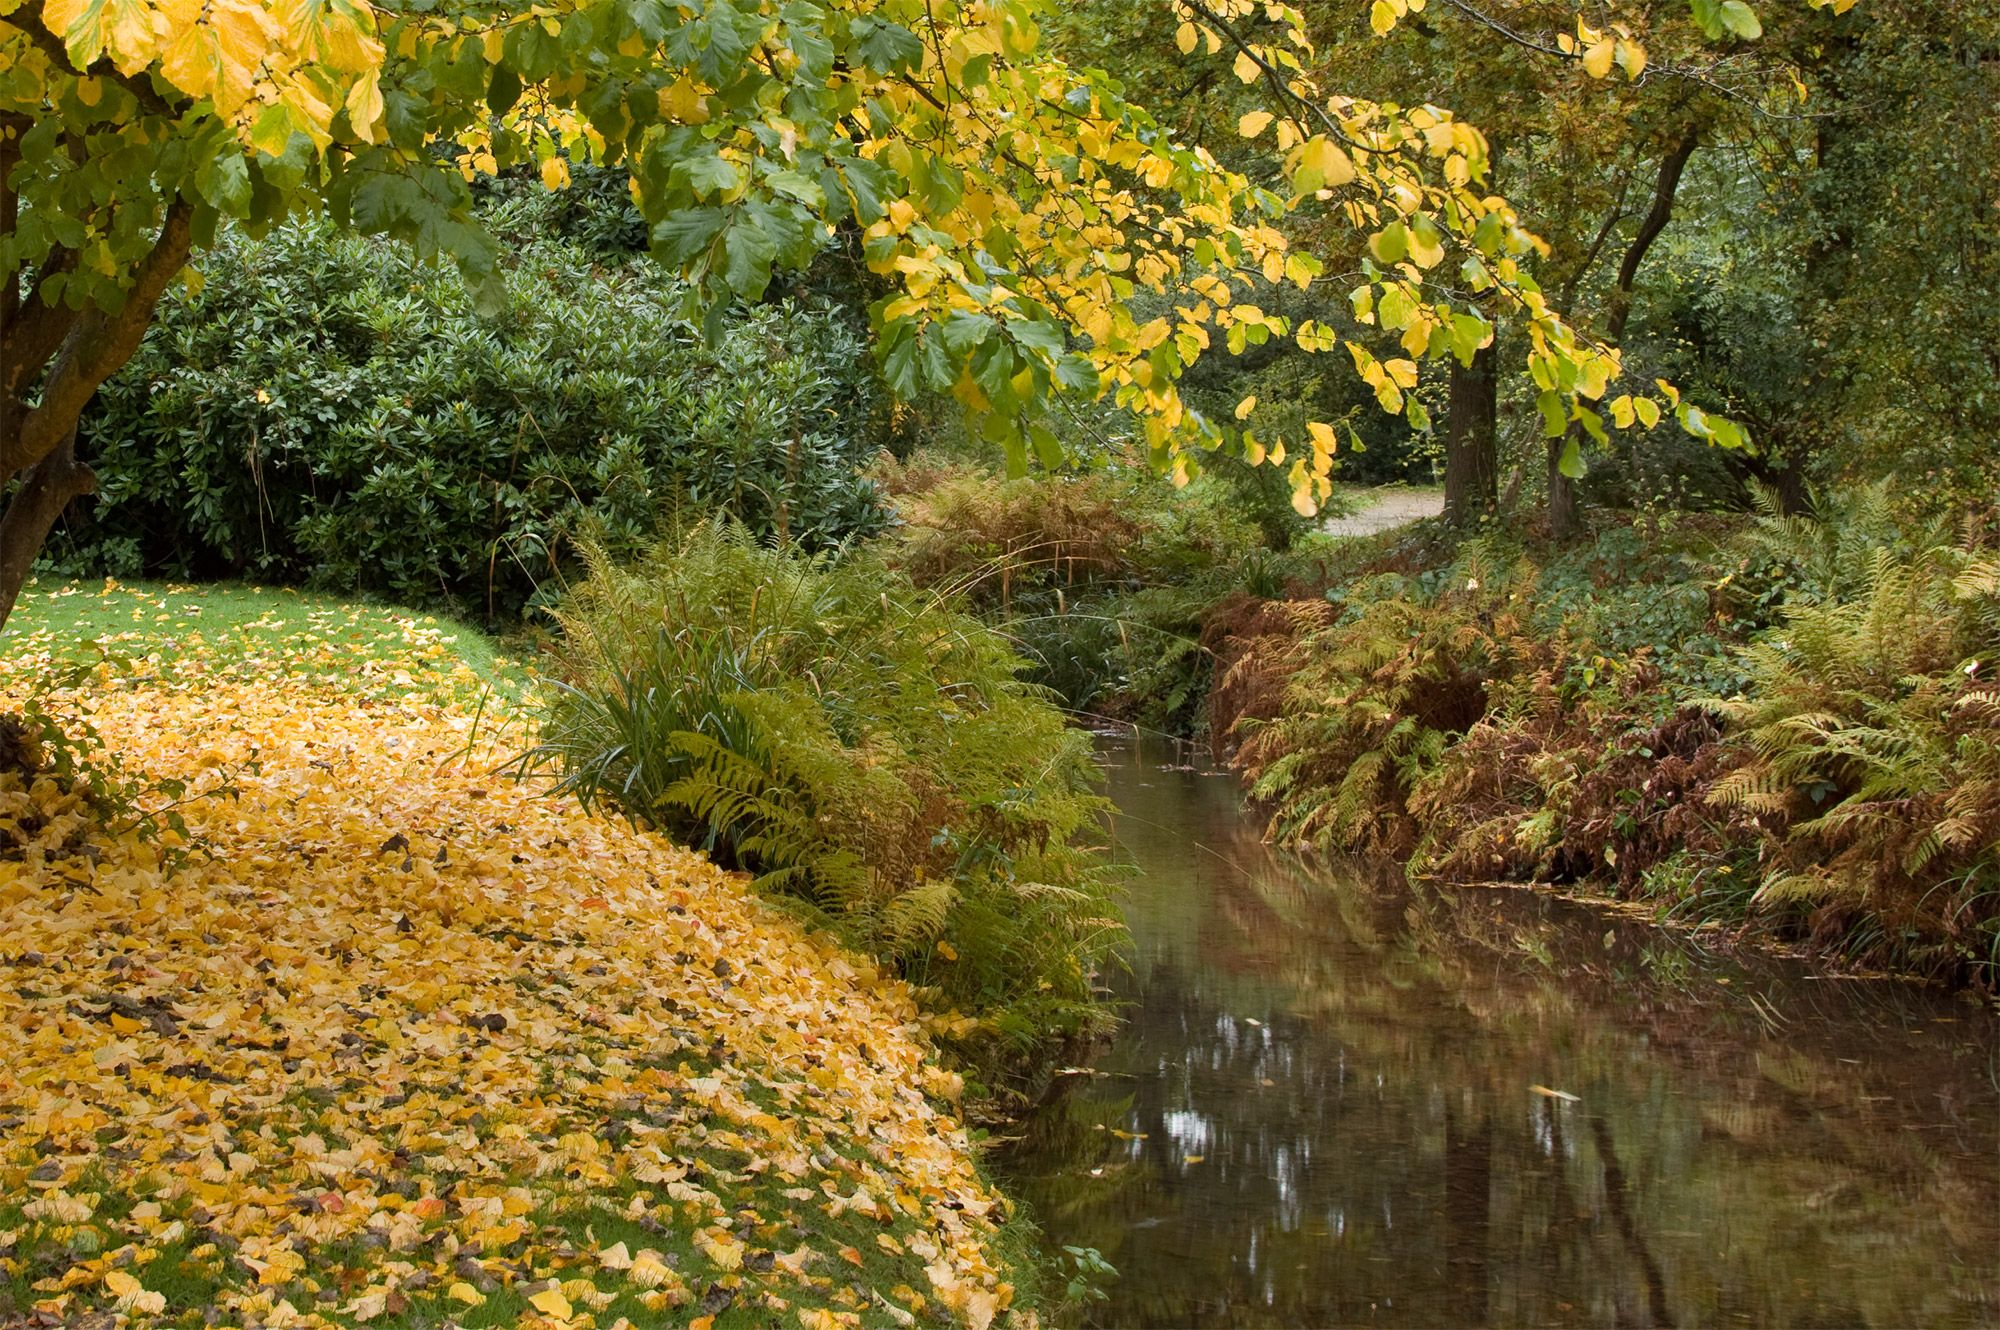 Autumn colour in the Woodland Gardens